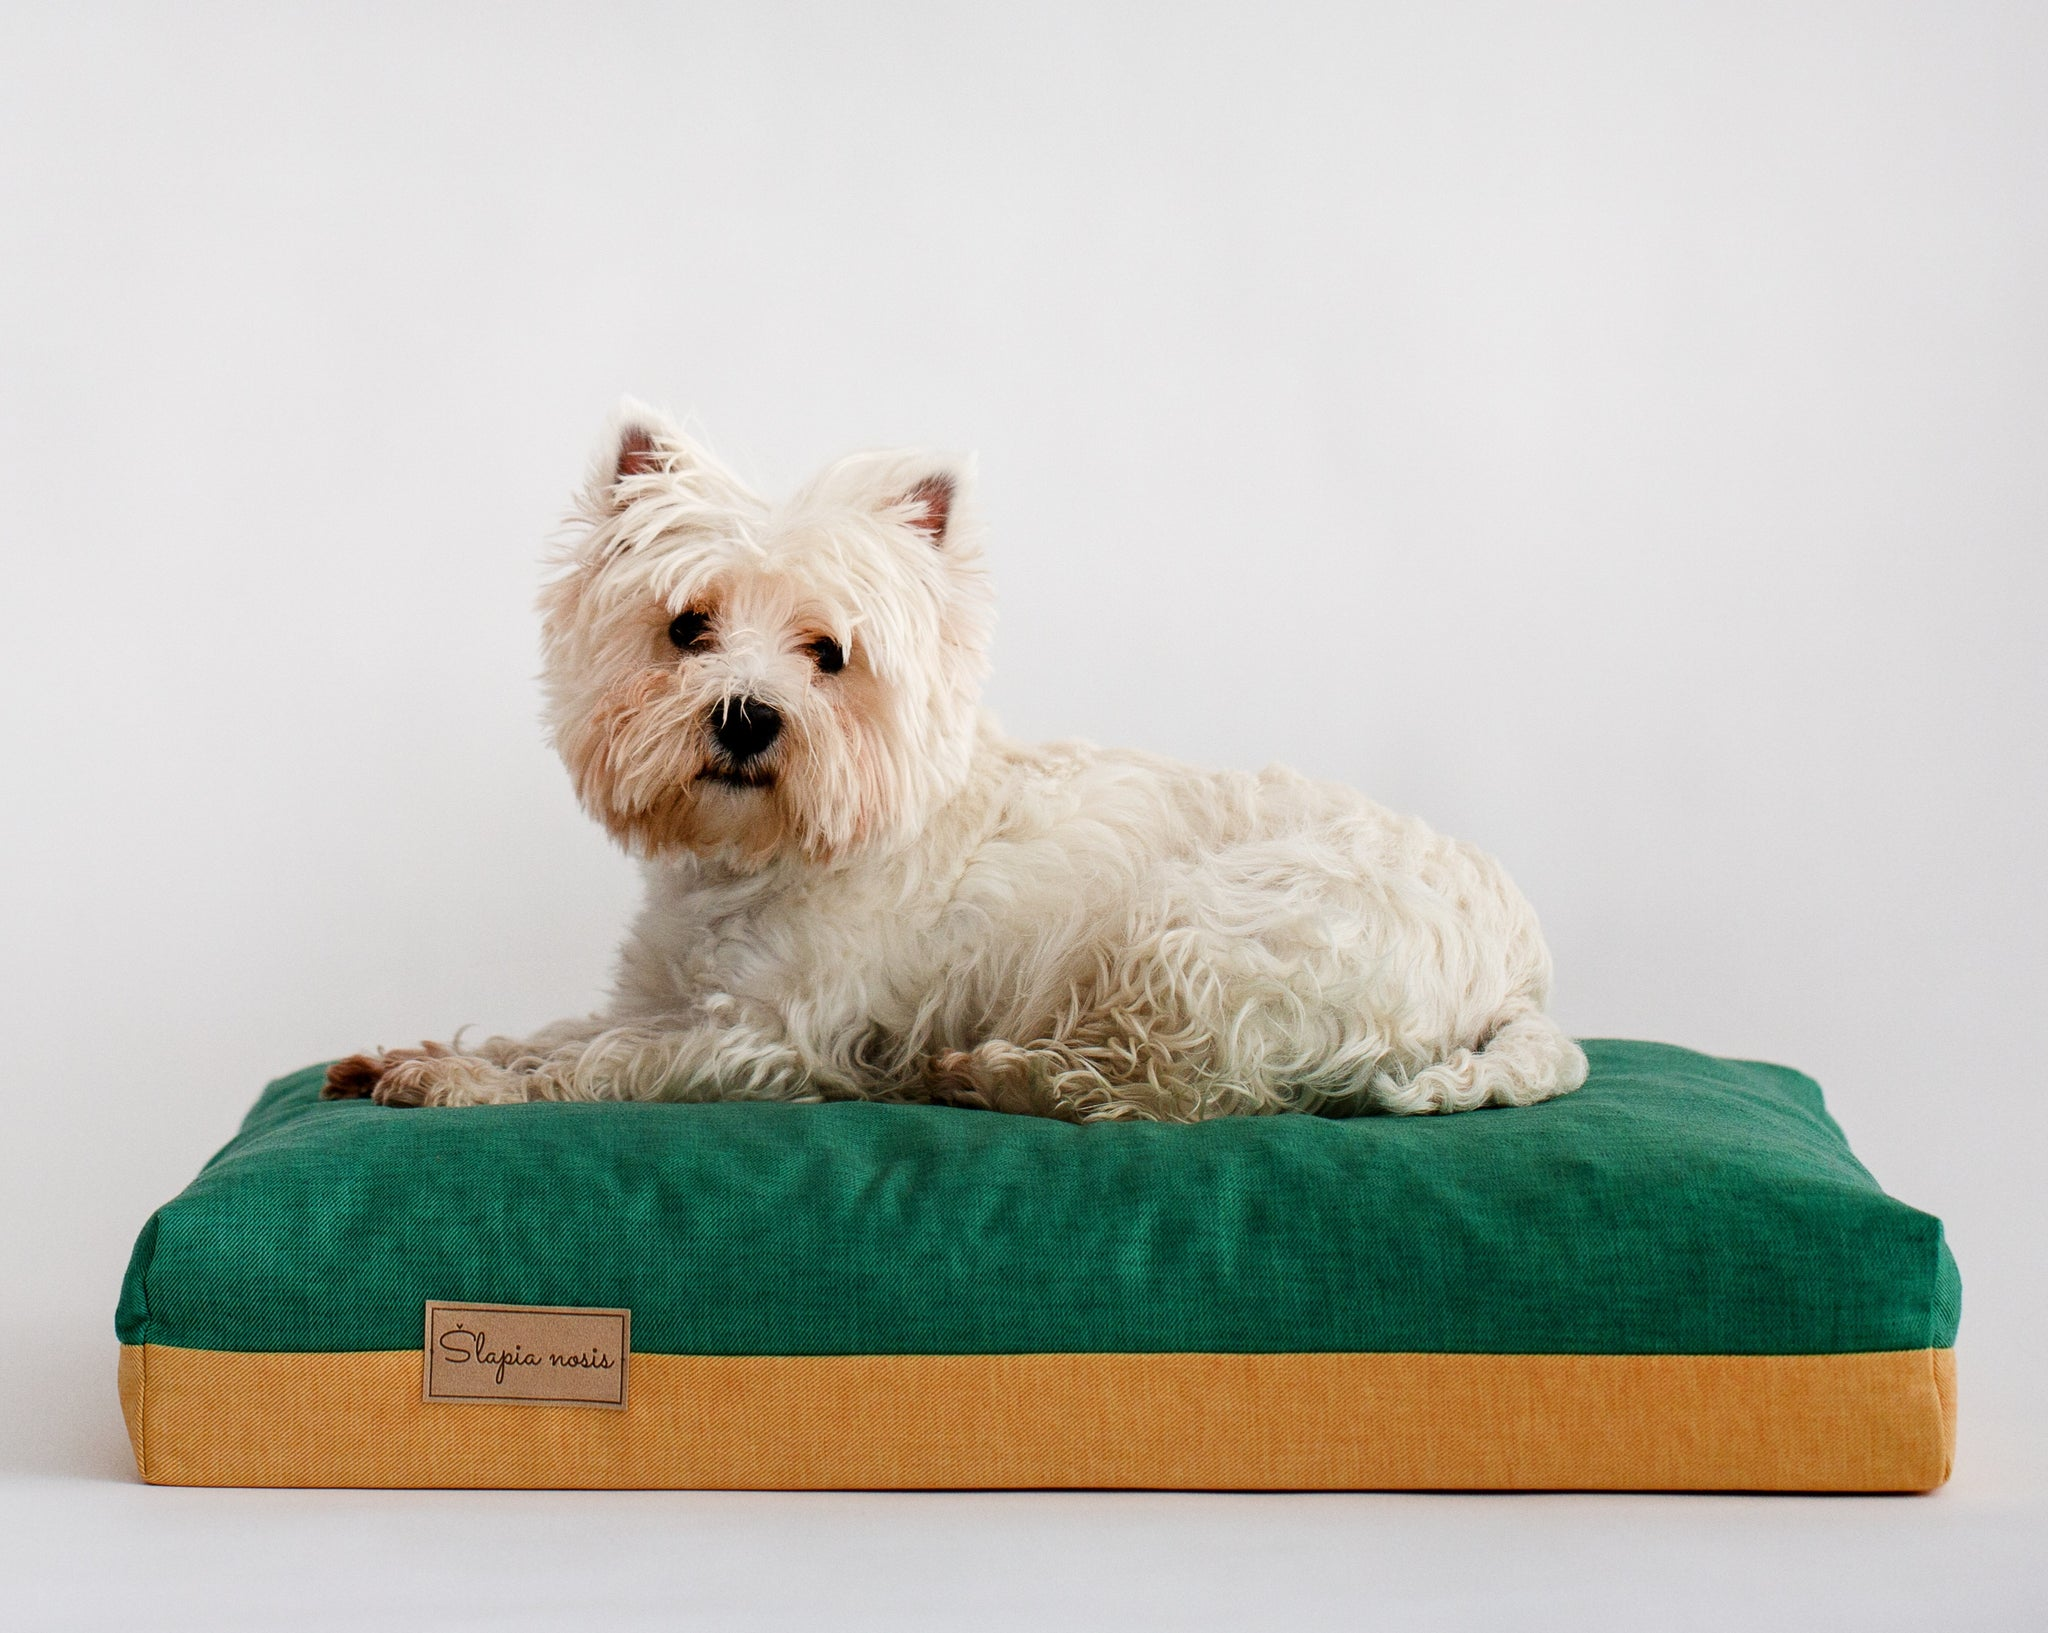 It is a West Highland White Terrier laying on a dog bed brand 'slapia nosis' wetnosedog. Šuns guolis 'šlapia nosis' ir šuo gulintis ant jo